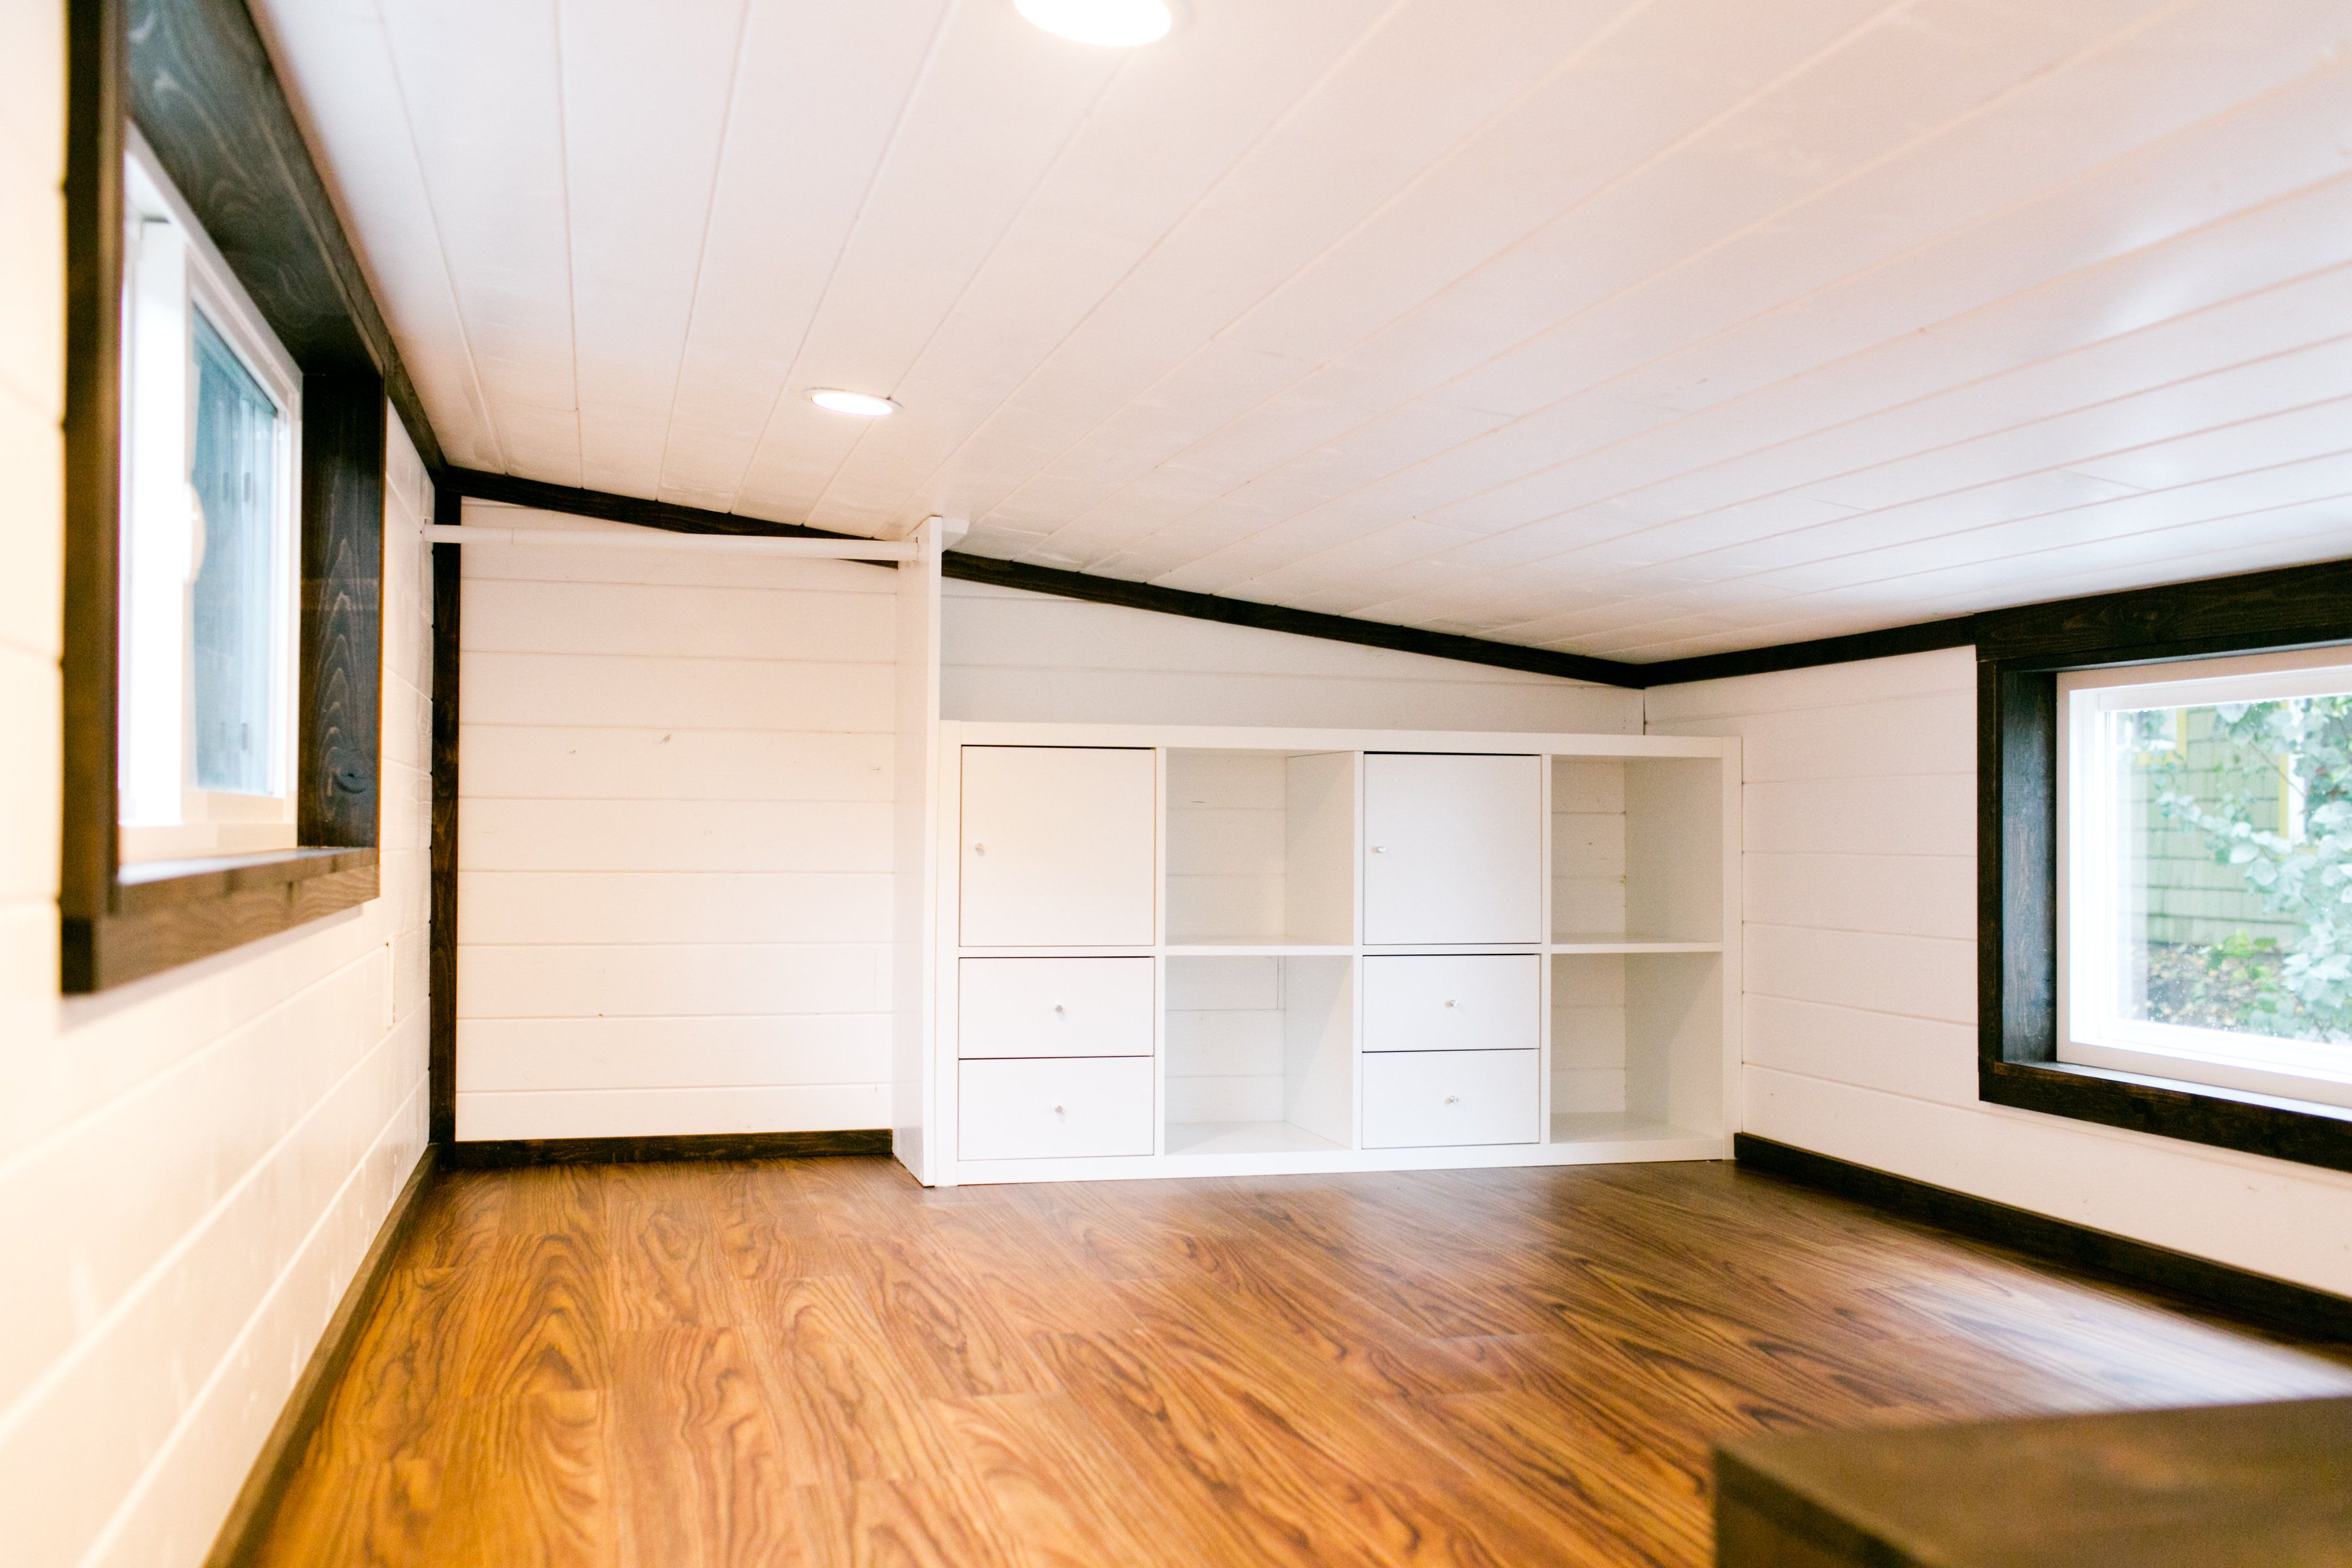 A Bellingham Tiny House Builder Combines Style And Storage